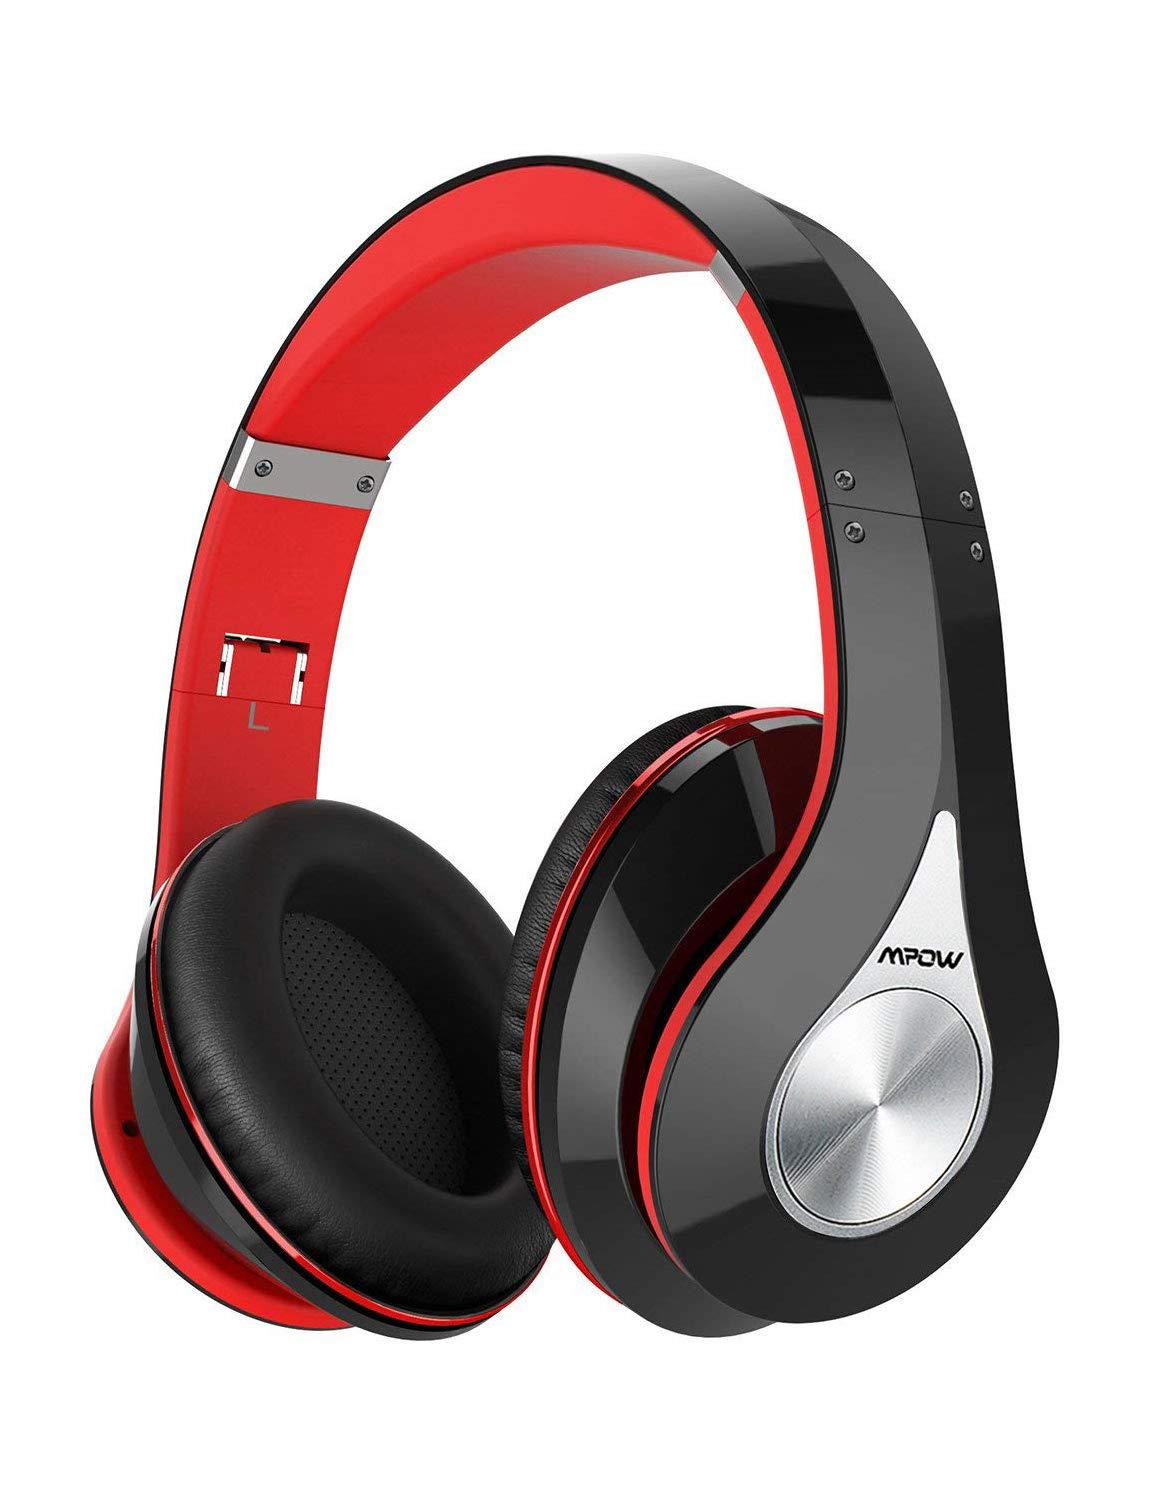 Mpow 059 Bluetooth Headphones Over Ear, Hi-Fi Stereo Wireless Headset, Foldable, Soft Memory-Protein Earmuffs, w/Built-in Mic Wired Mode PC/Cell Phones/TV by Mpow